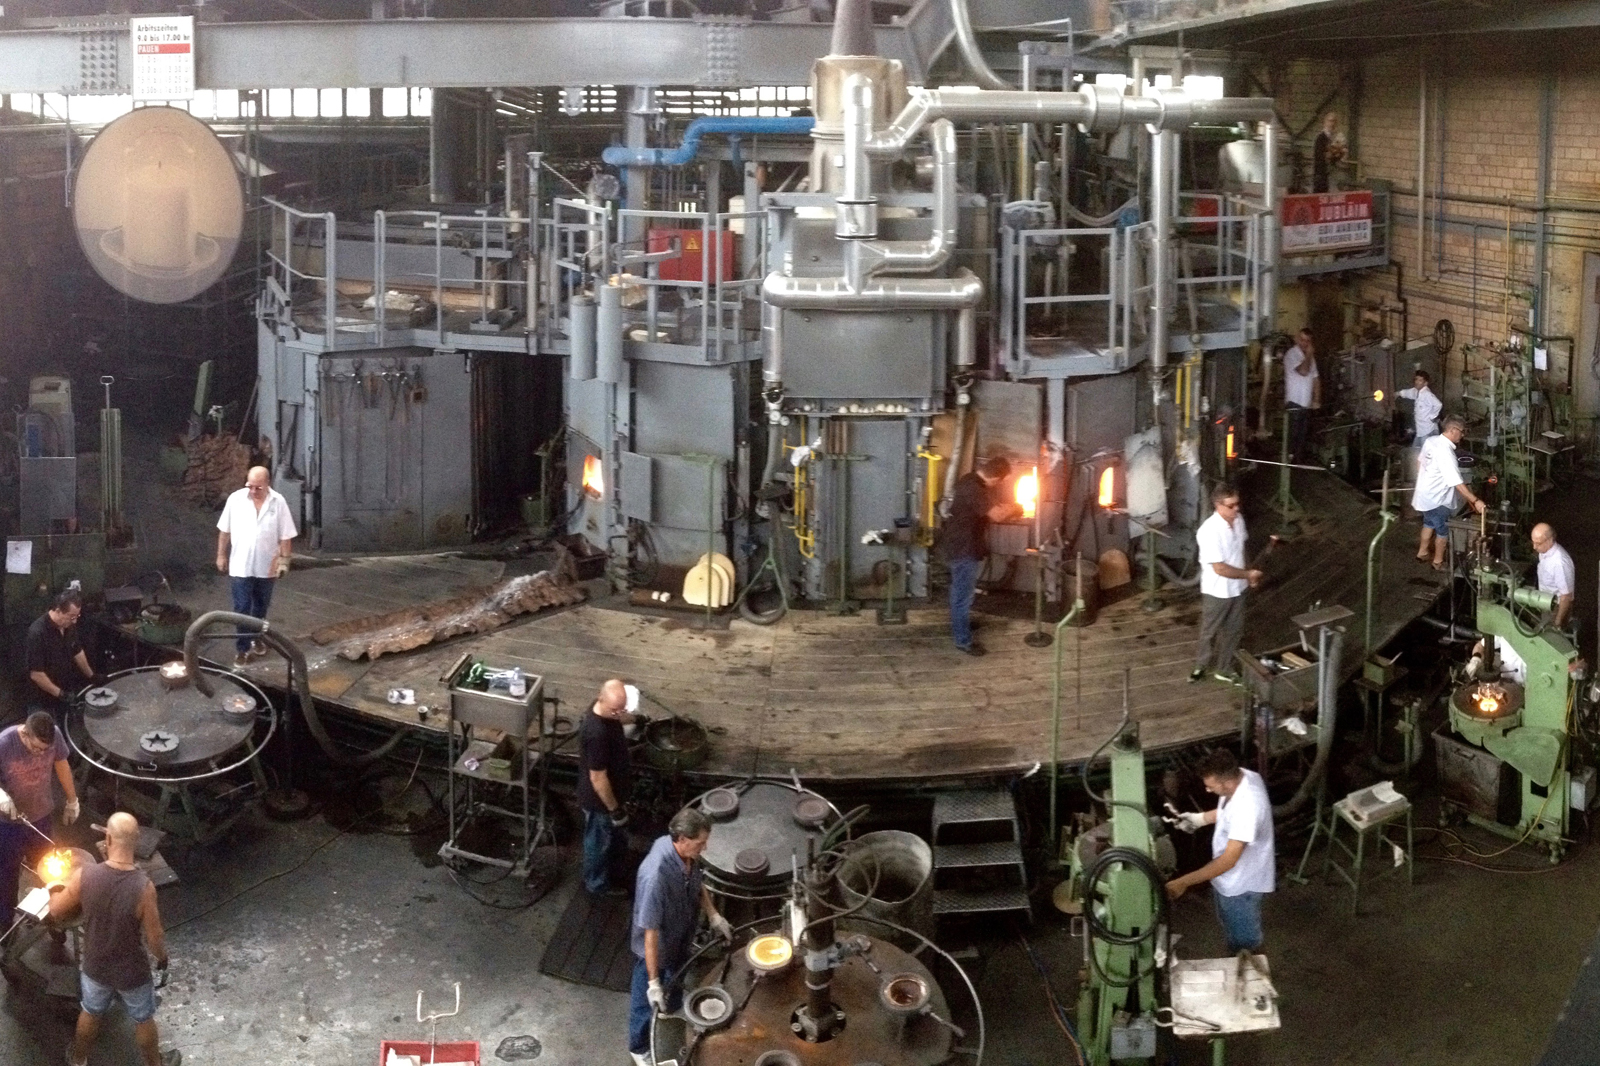 Glass blowing factory, Hergiswil (CH / NW)